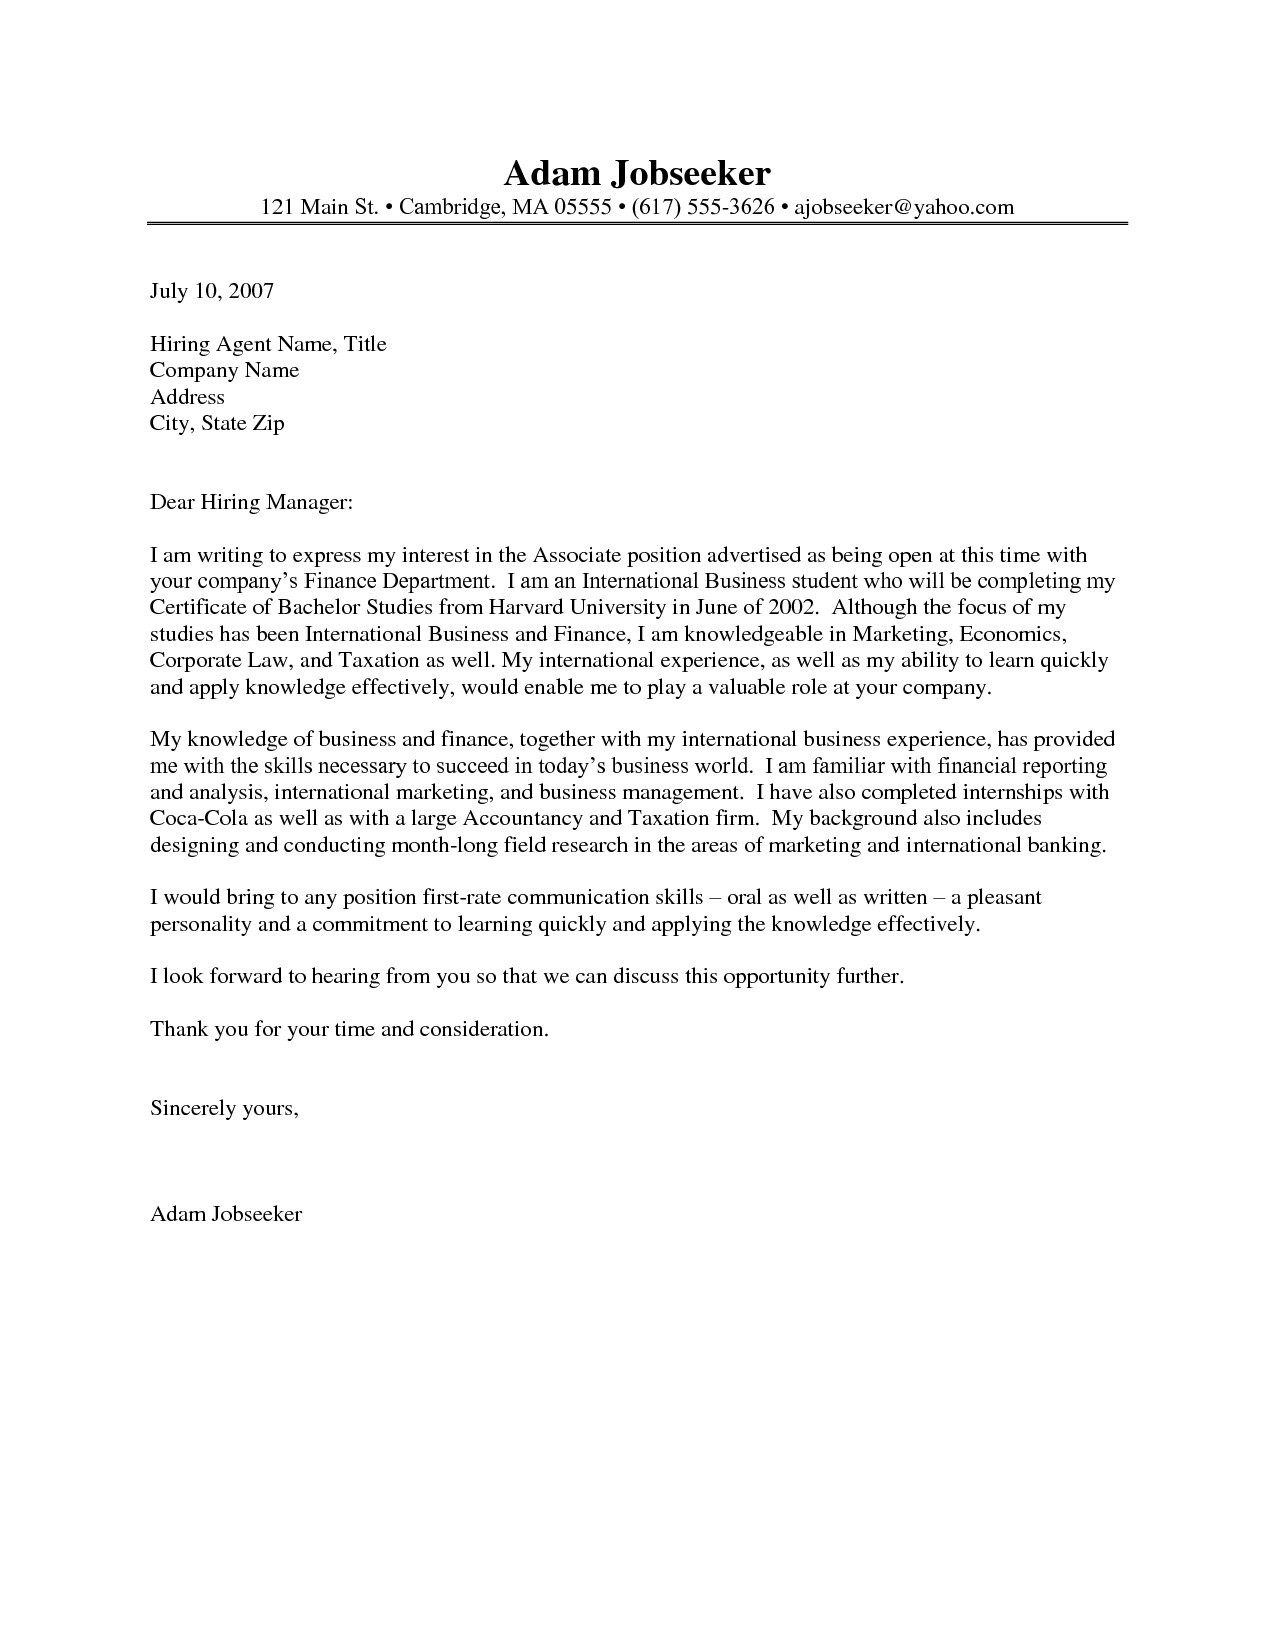 Fancy Letter Template - Cover Letter Examples for Internship Best Beautiful Business